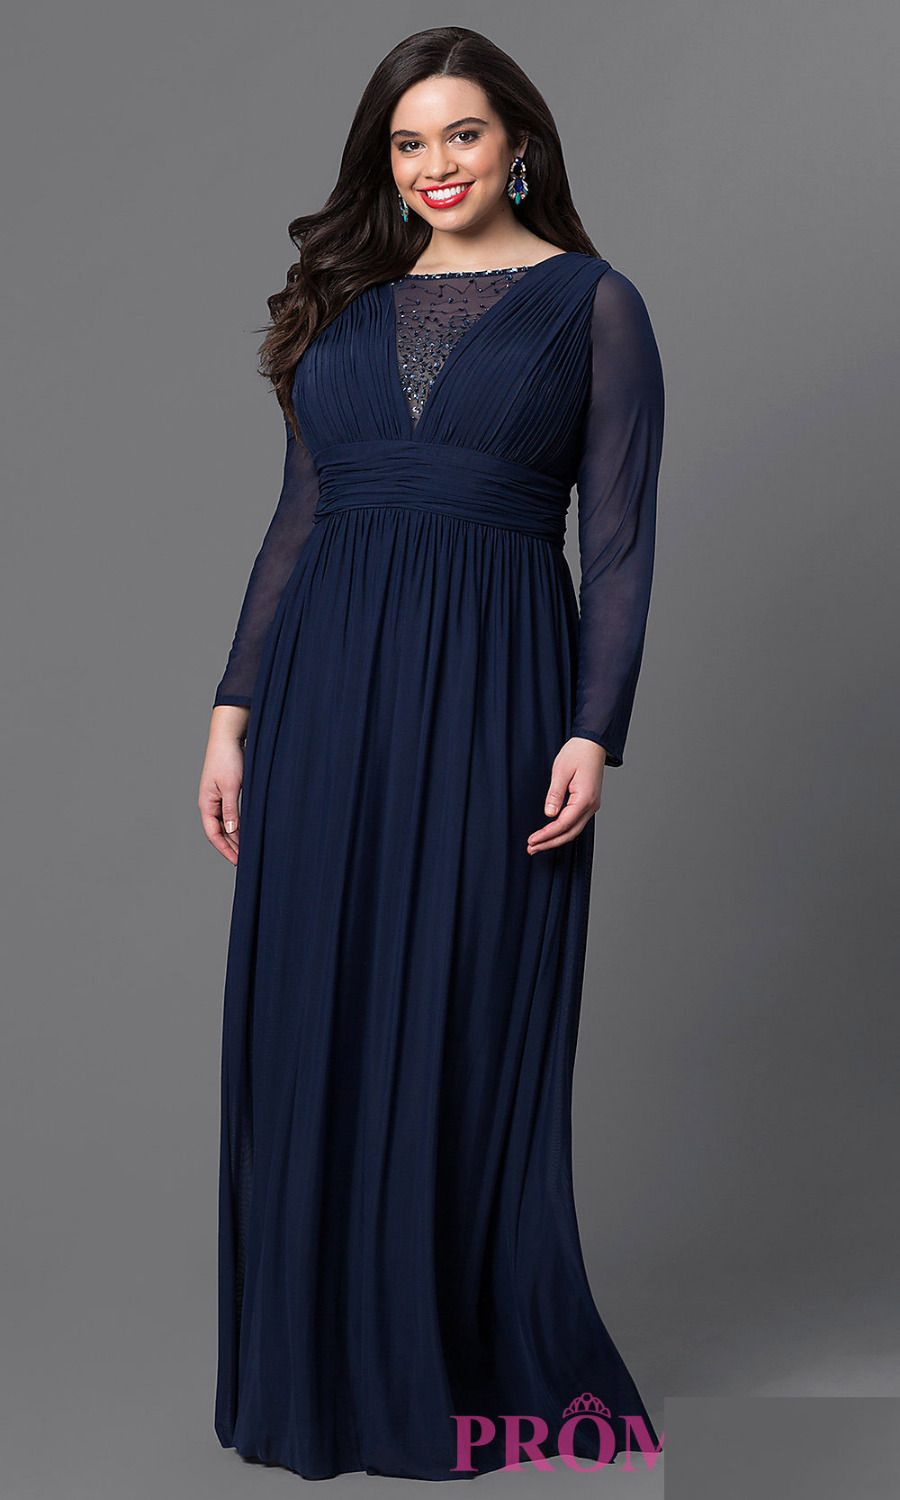 Find More Evening Dresses Information about Navy Blue Chiffon Plus ...